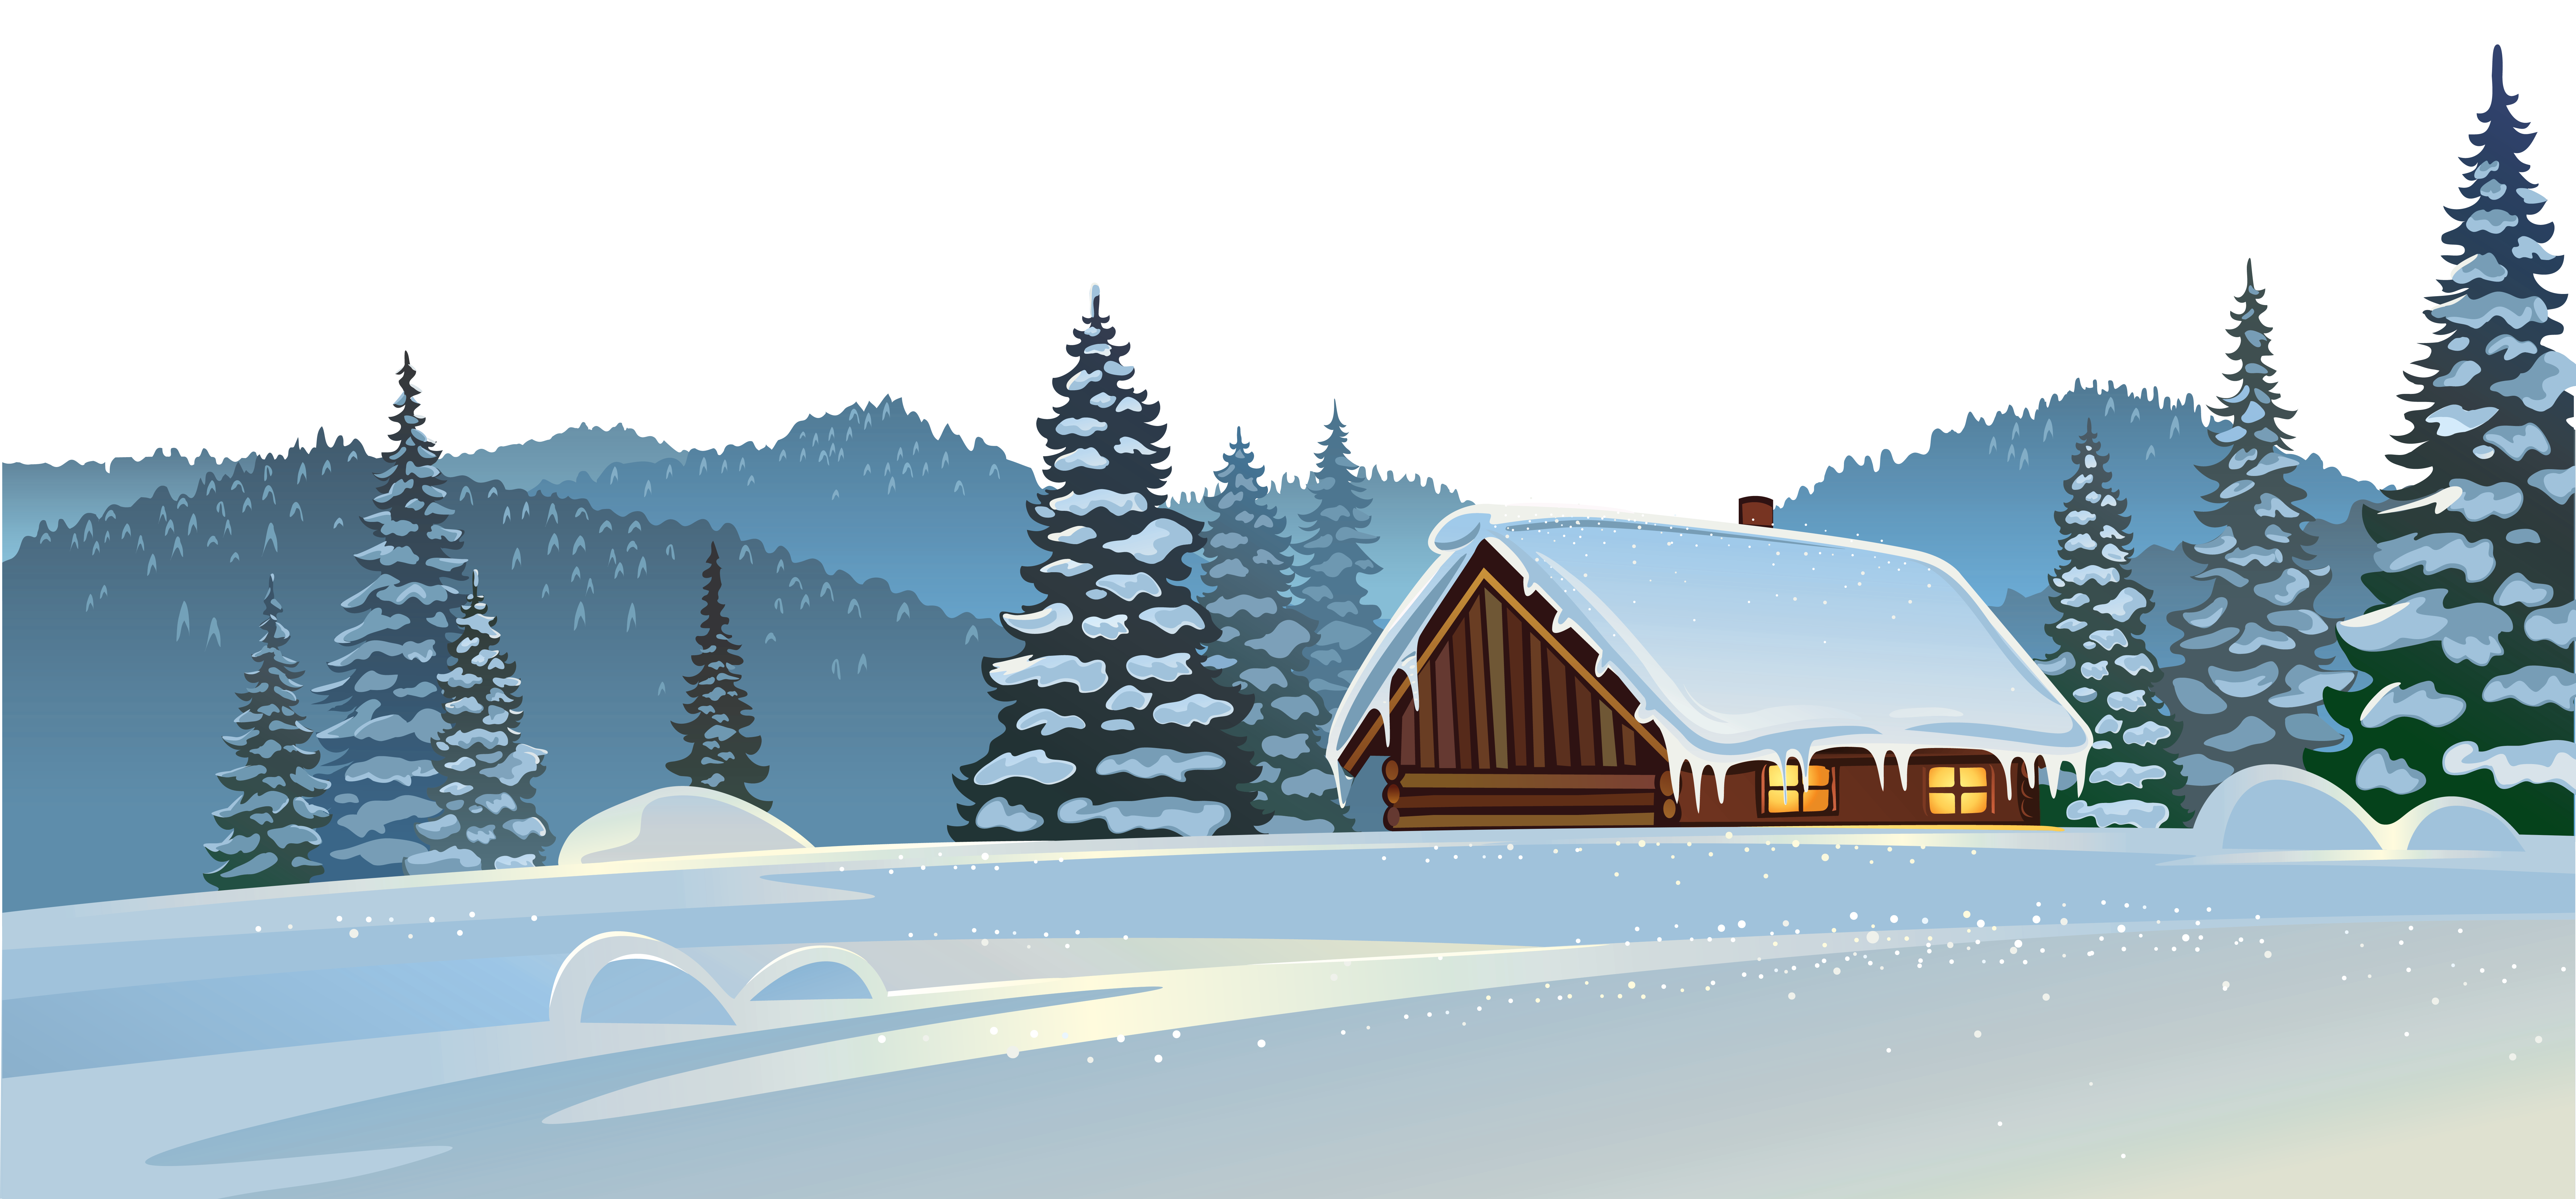 House in snow clipart image transparent download Winter House and Snow Ground PNG Clipart Image | Gallery ... image transparent download